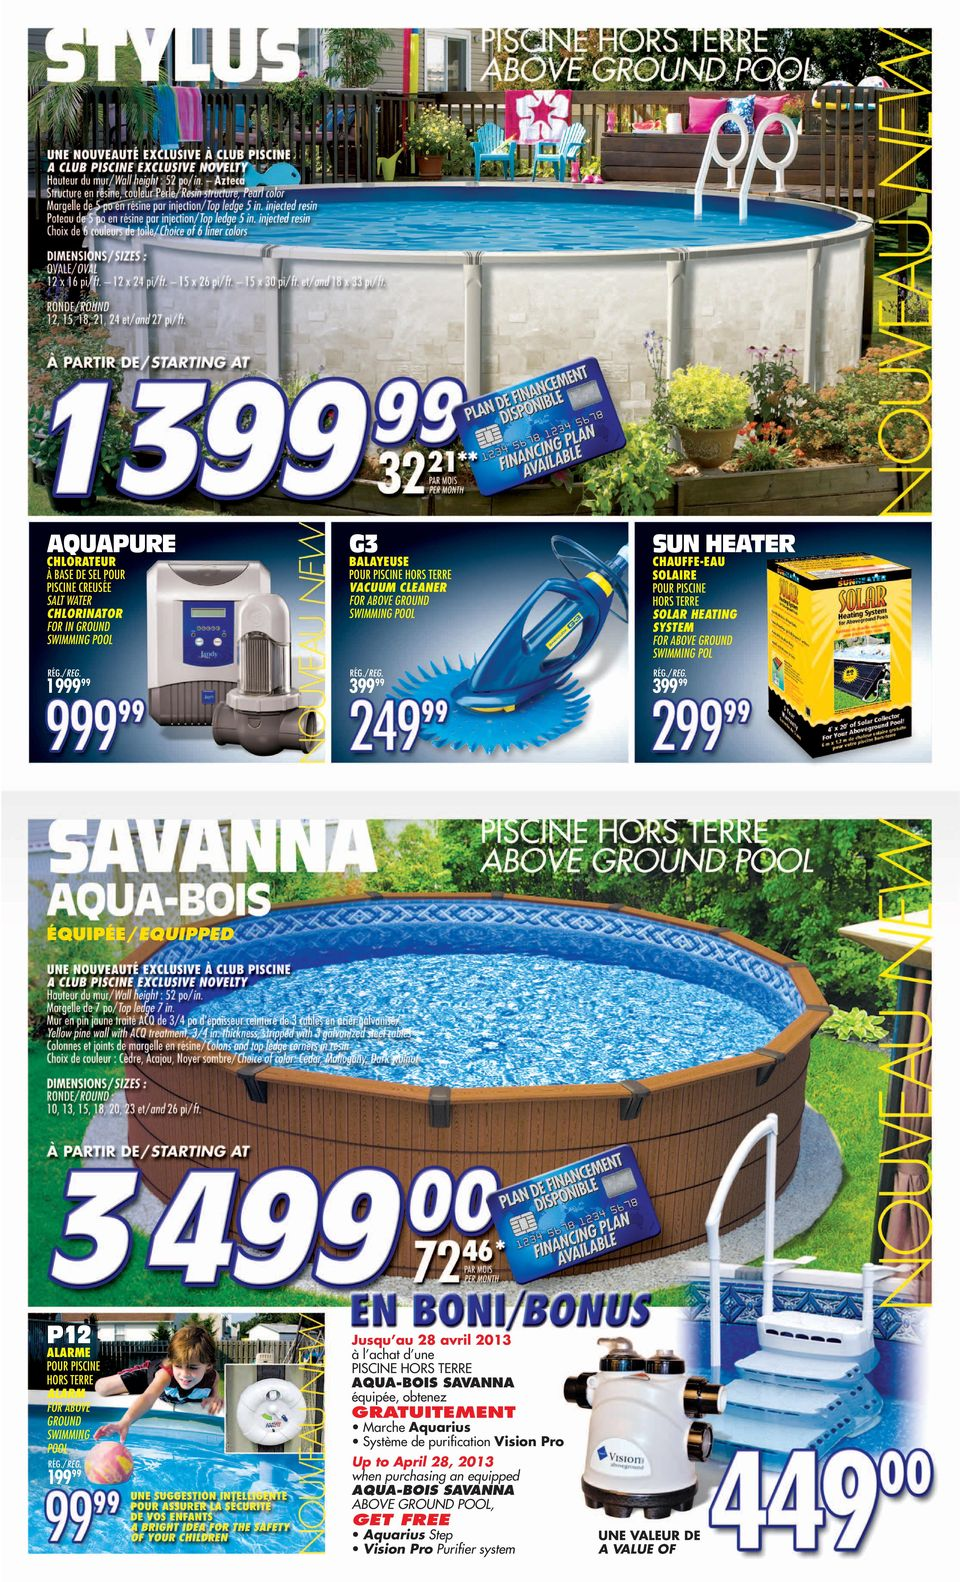 FINANCEMENT AU VERSO/SEE FINANCING DETAILS ON THE BACK PAGE) À BASE DE SEL ALARME ALARM FOR ABOVE GROUND SWIMMING POOL SEMI-